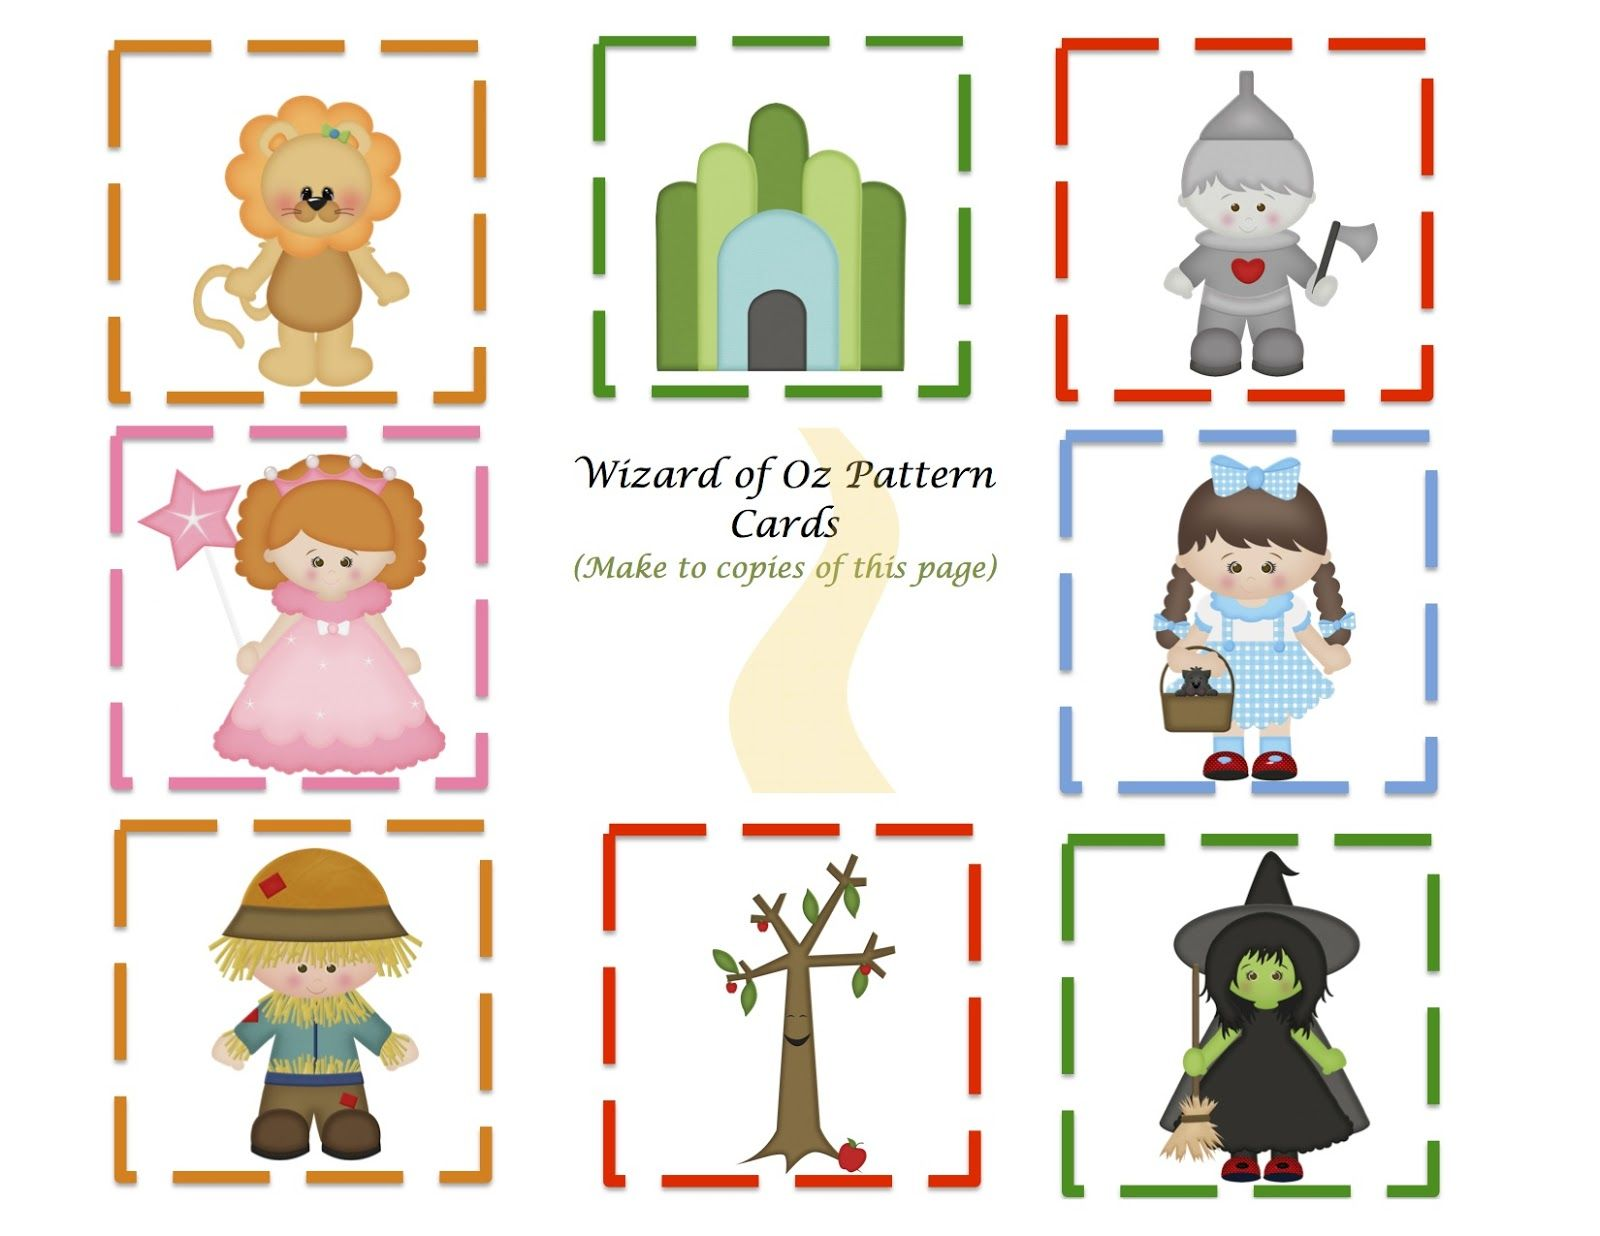 Preschool Printables Wizard Of Oz Mini Printable Wizard Of Oz Preschool Printables Wizard